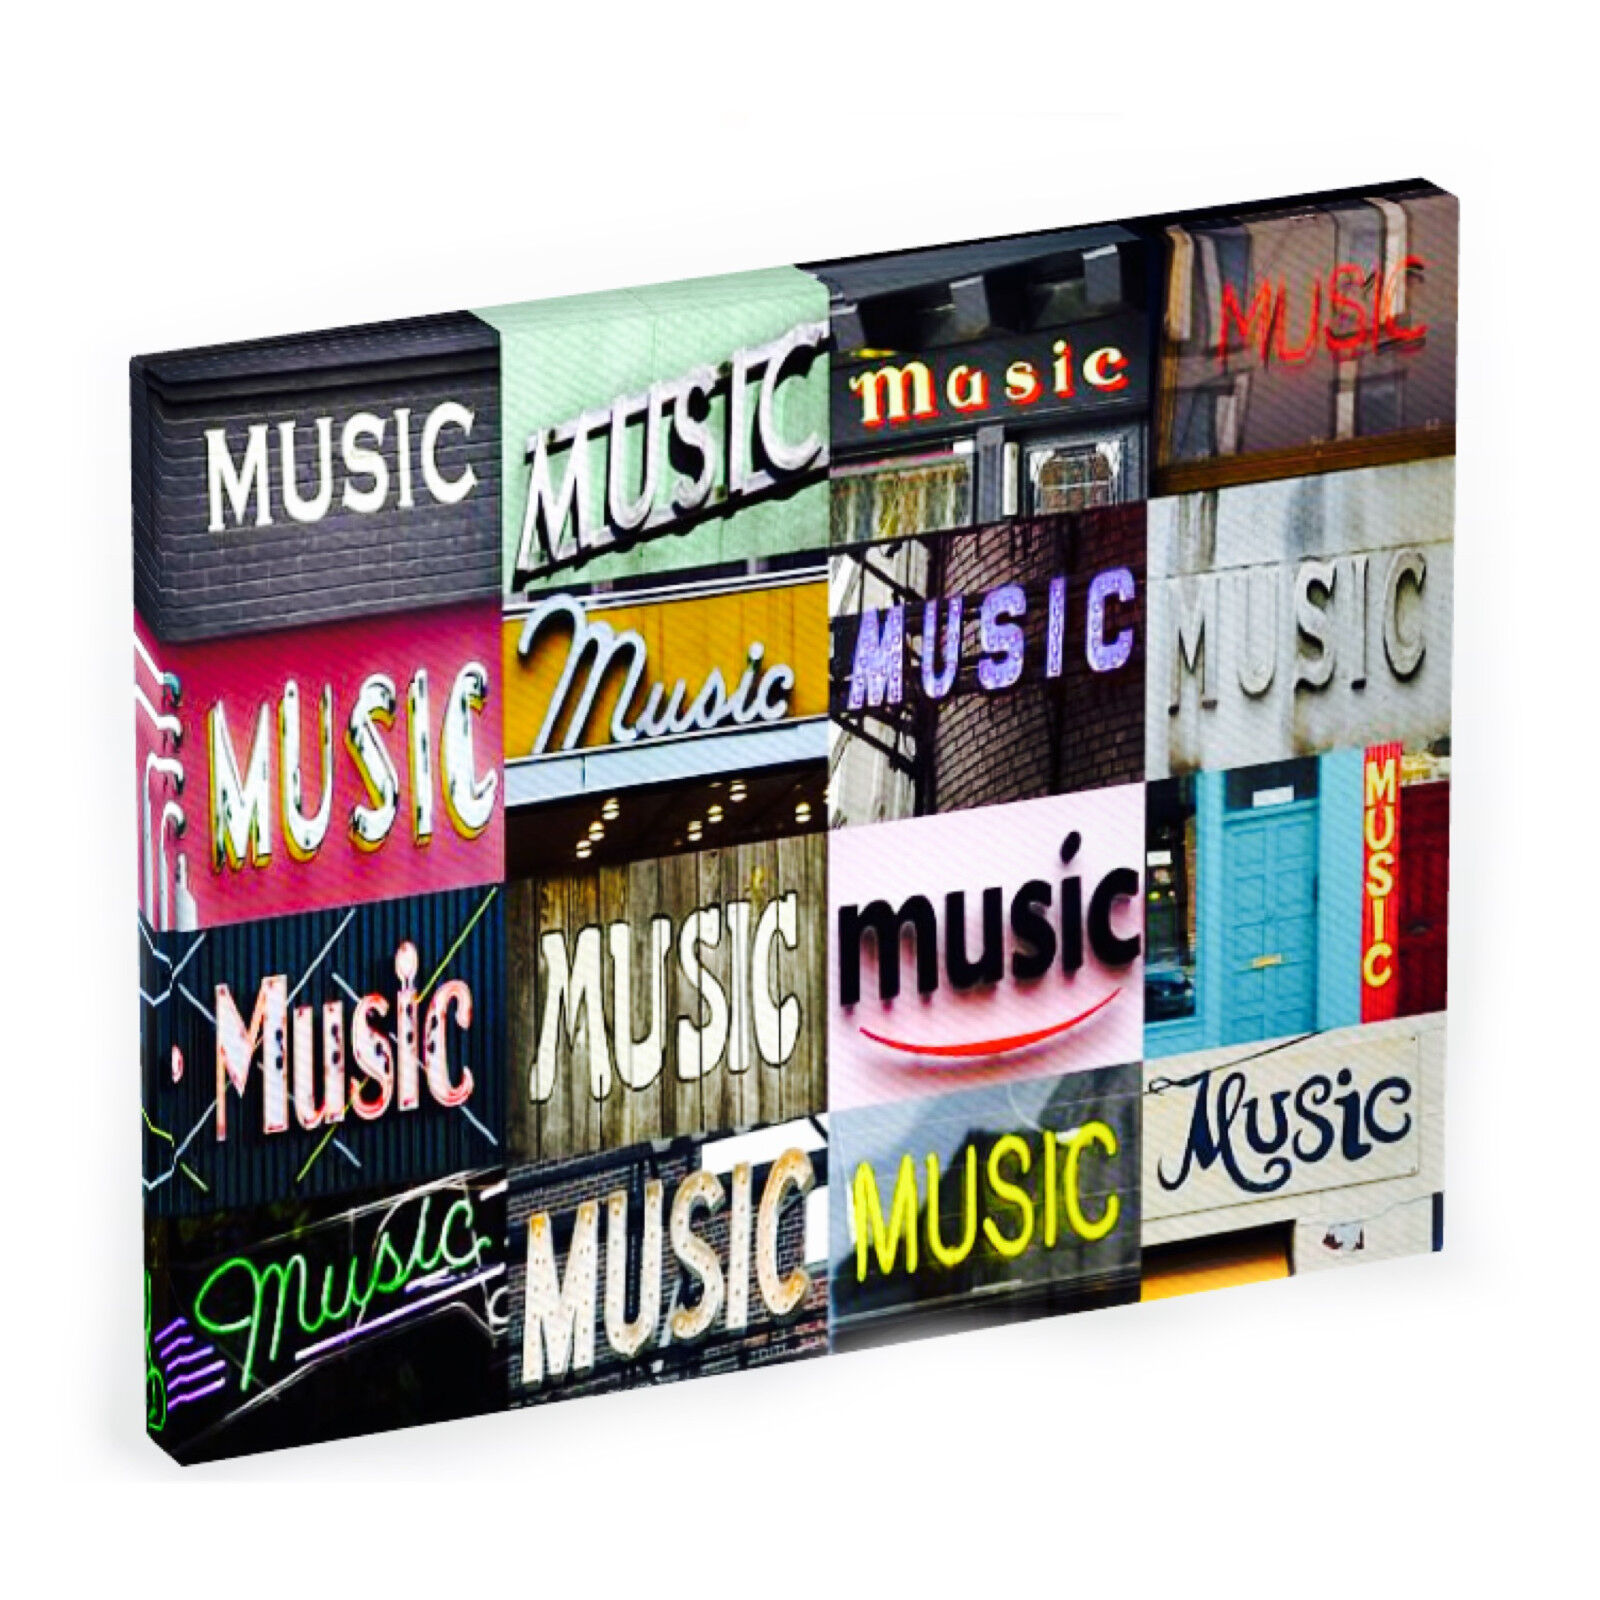 Personalized Photo Canvas featuring the word MUSIC in photos of signs